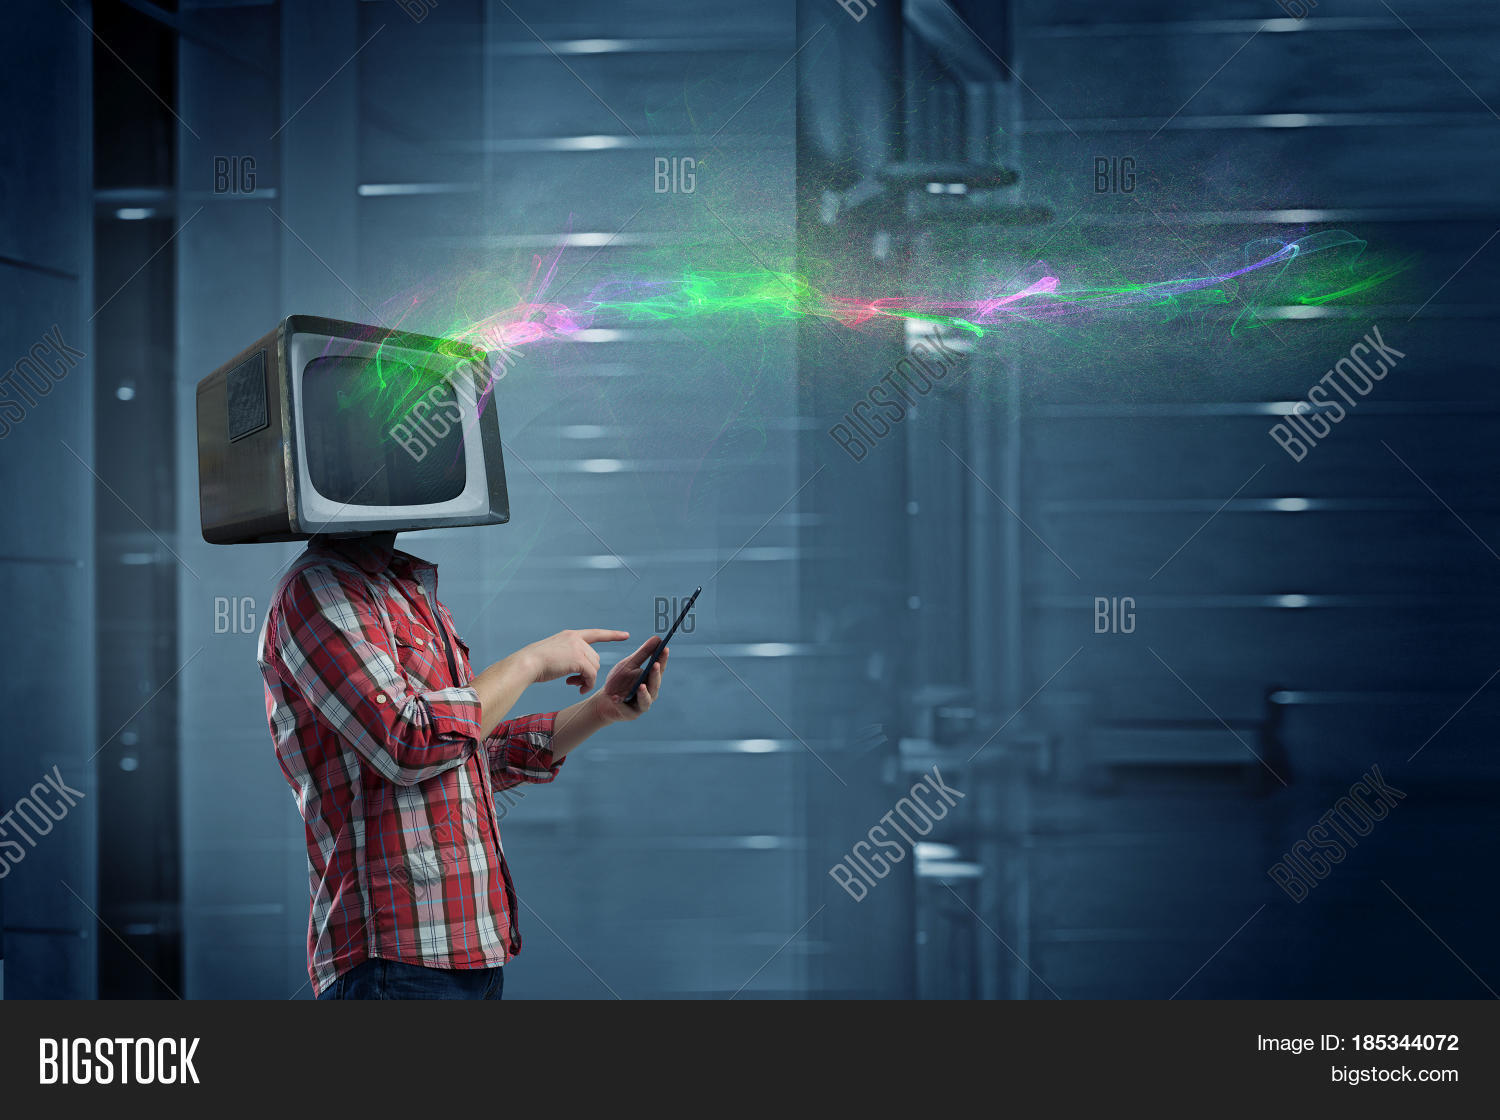 An analysis of the problem of television addiction